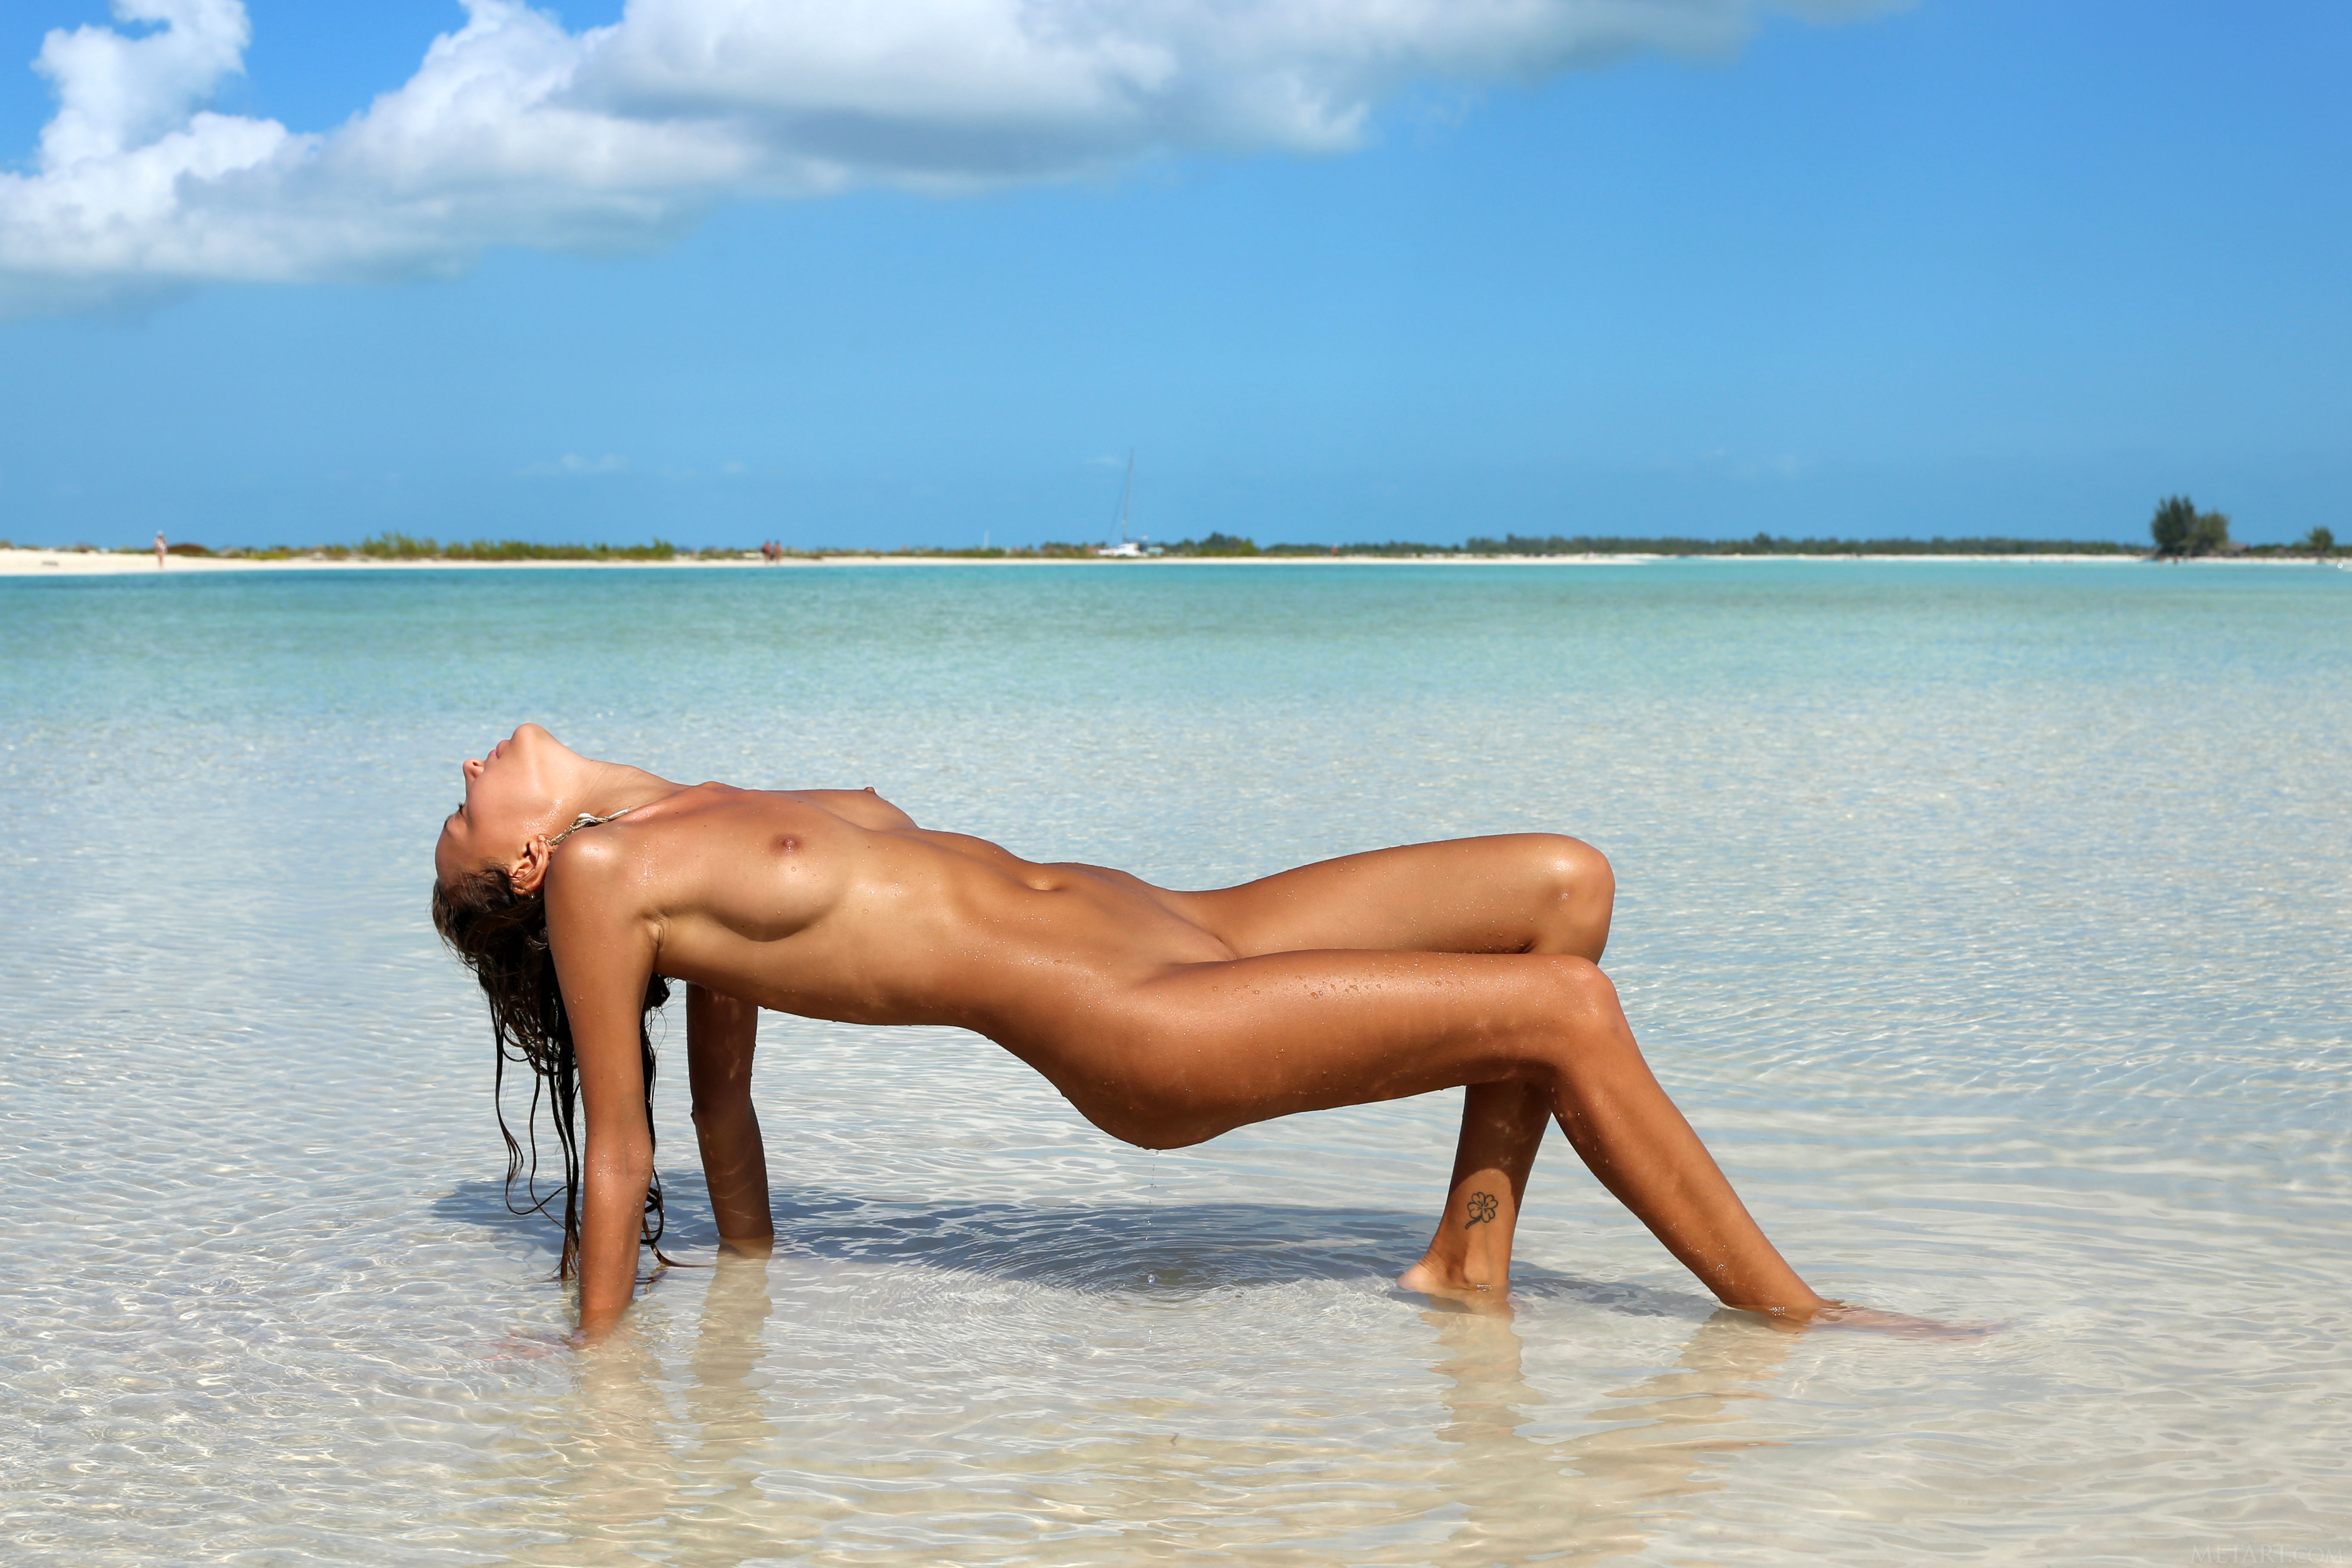 Necessary clover nude beach and have